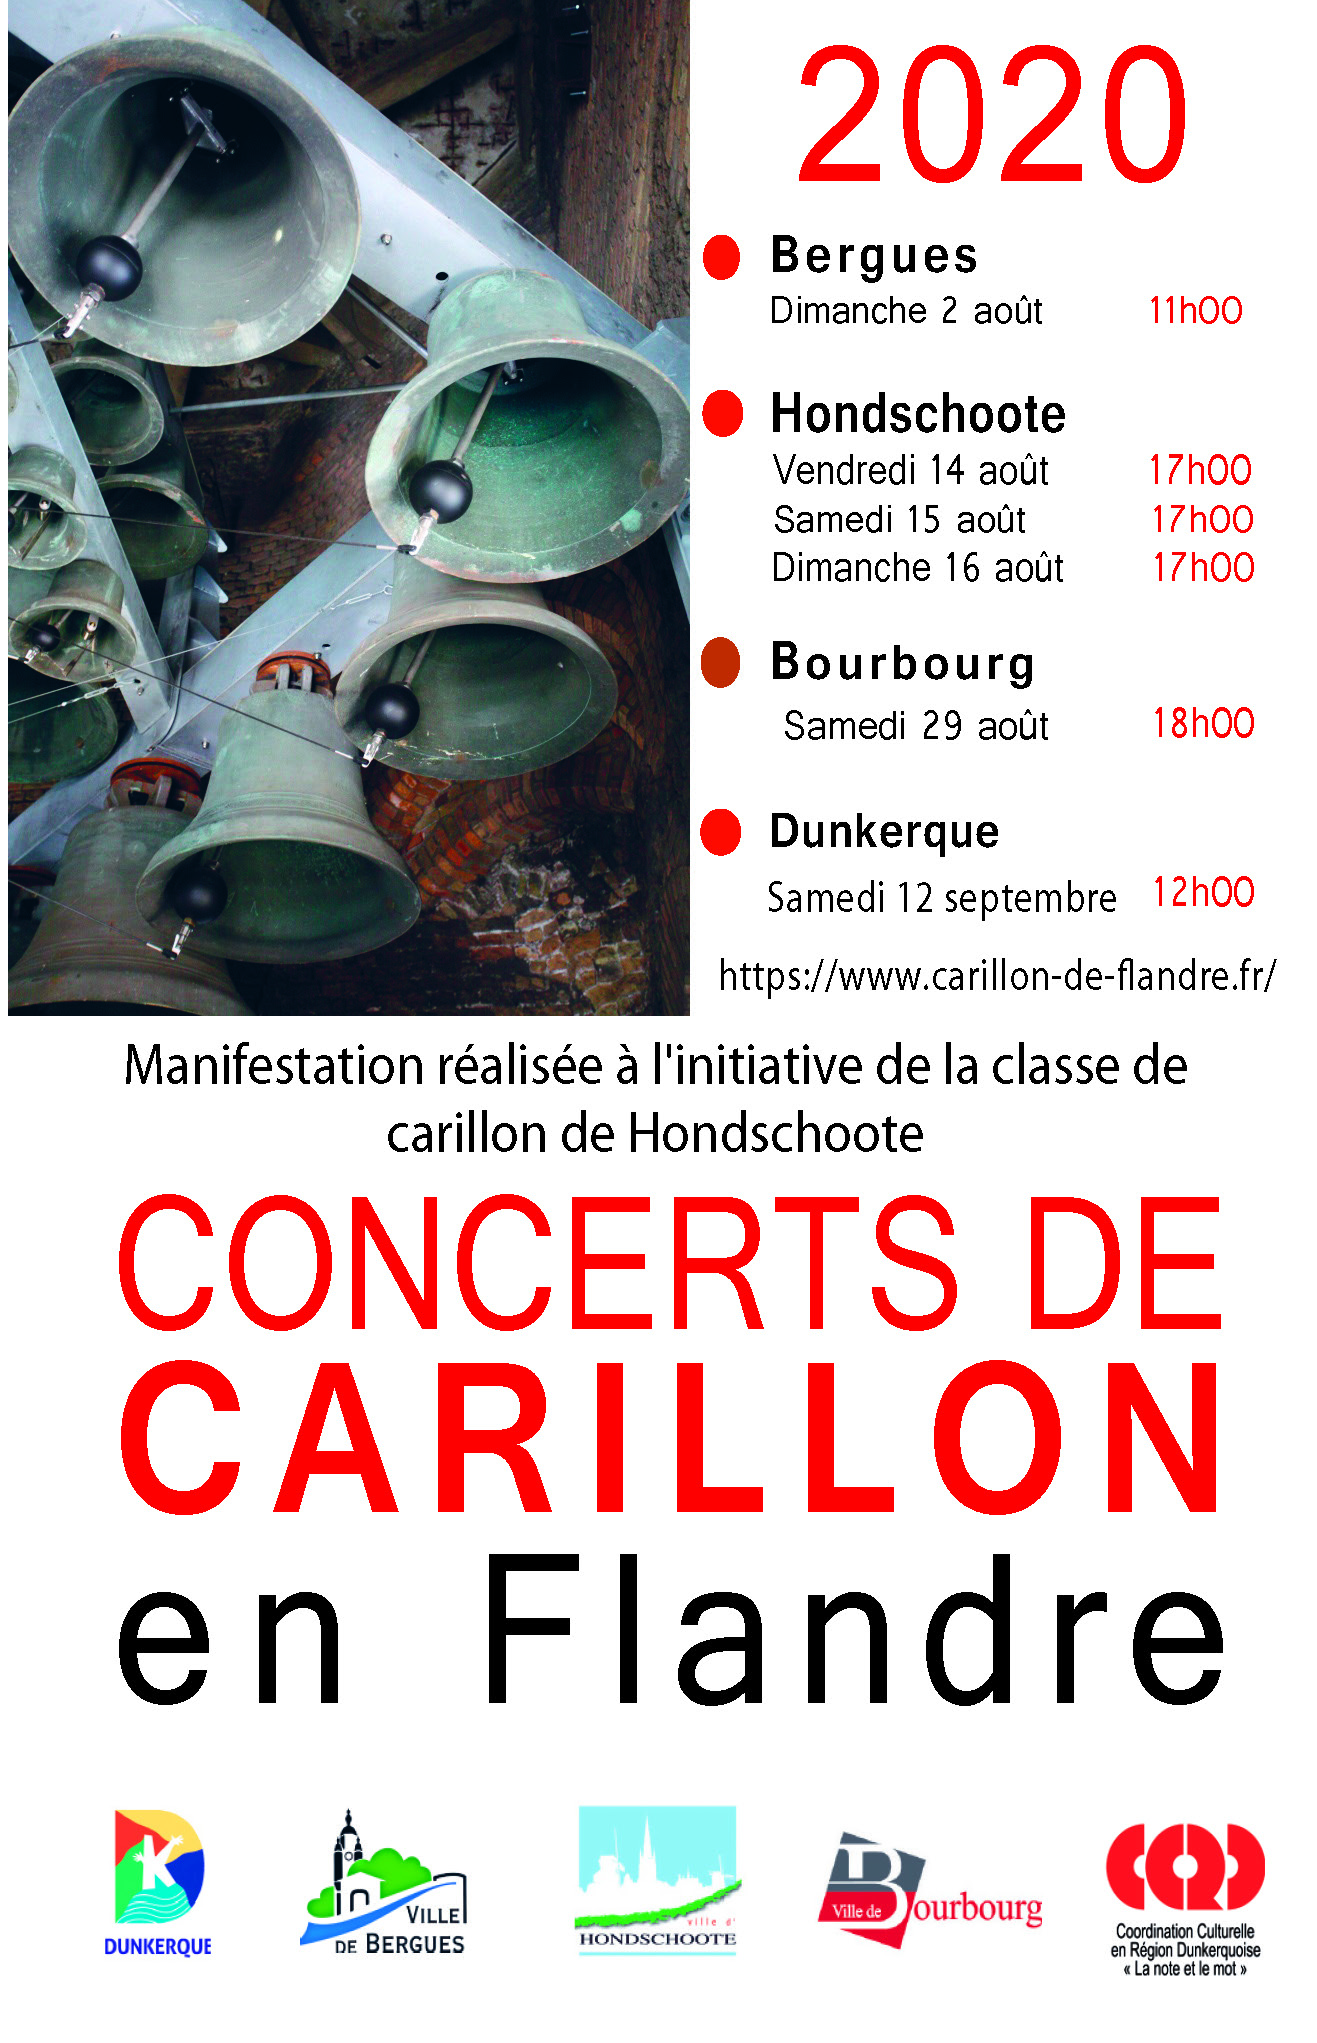 A5--flyer- CARILLON-2020-4 (1)_Page_1.jpg